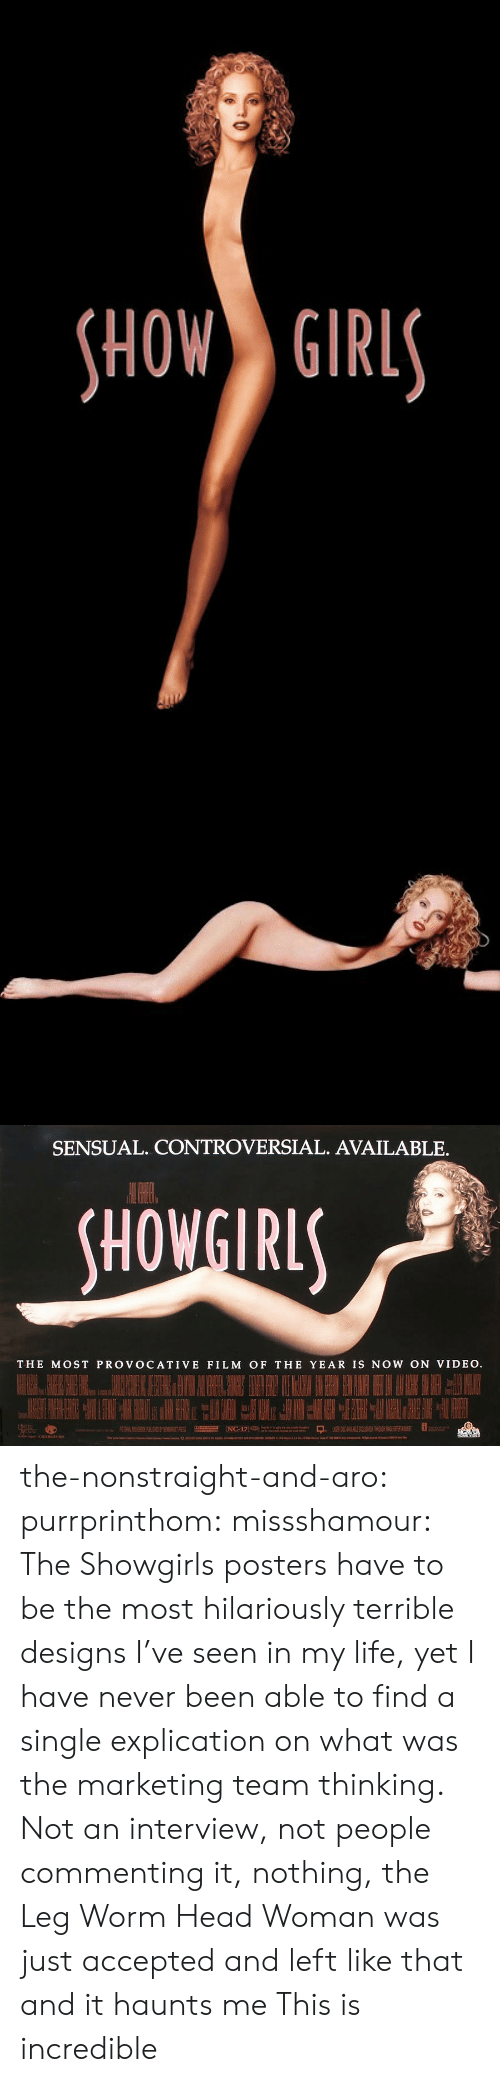 Head, Life, and Tumblr: HOW GIRL   SENSUAL. CONTROVERSIAL. AVAILABLE.  HOWGIRL  THE MOST PROVOCATIVE FILM OF THE YEAR IS NOW ON VIDEO the-nonstraight-and-aro: purrprinthom:  missshamour:  The Showgirls posters have to be the most hilariously terrible designs I've seen in my life, yet I have never been able to find a single explication on what was the marketing team thinking. Not an interview, not people commenting it, nothing, the Leg Worm Head Woman was just accepted and left like that and it haunts me  This is incredible